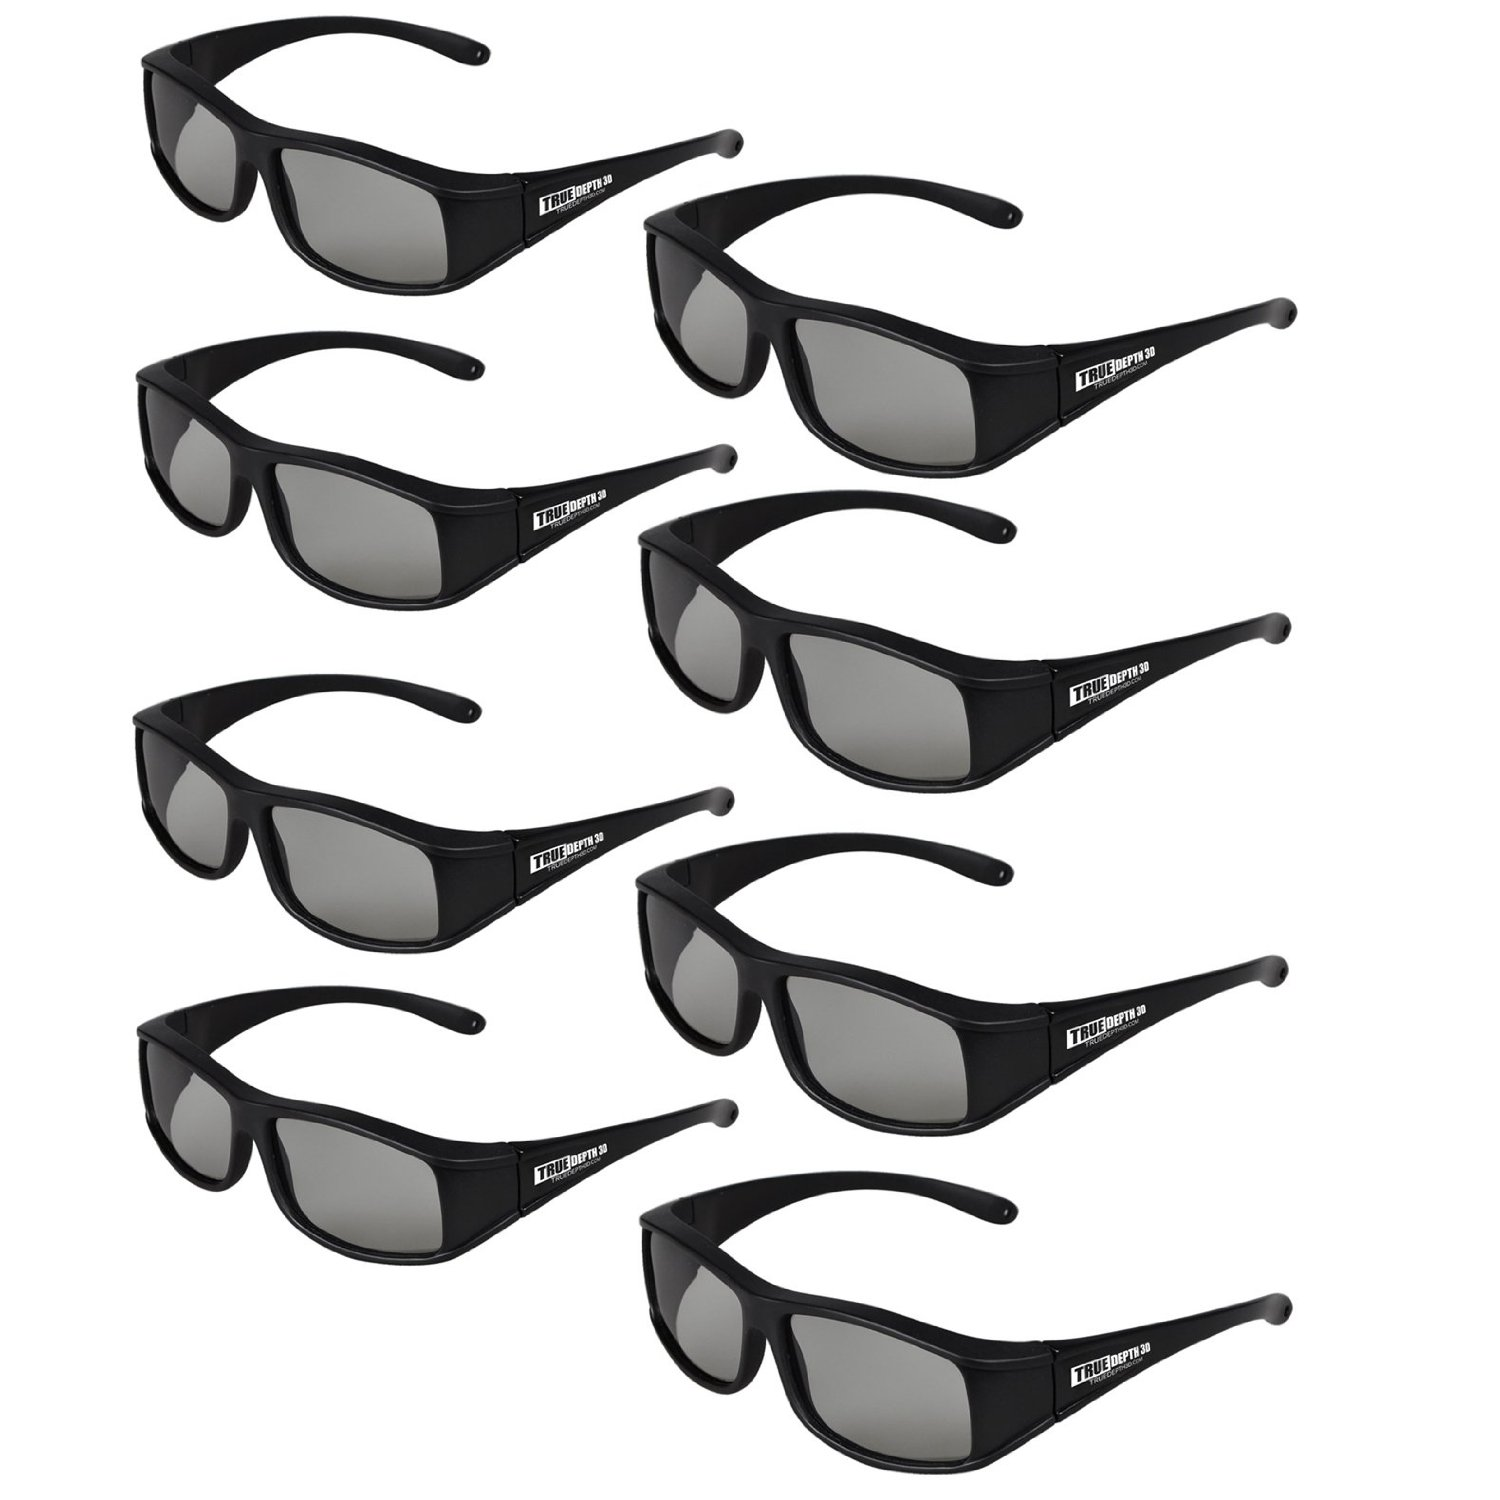 True Depth 3D® Circular Polarized Glasses for Passive LG 3D TVs (8 Pairs!)